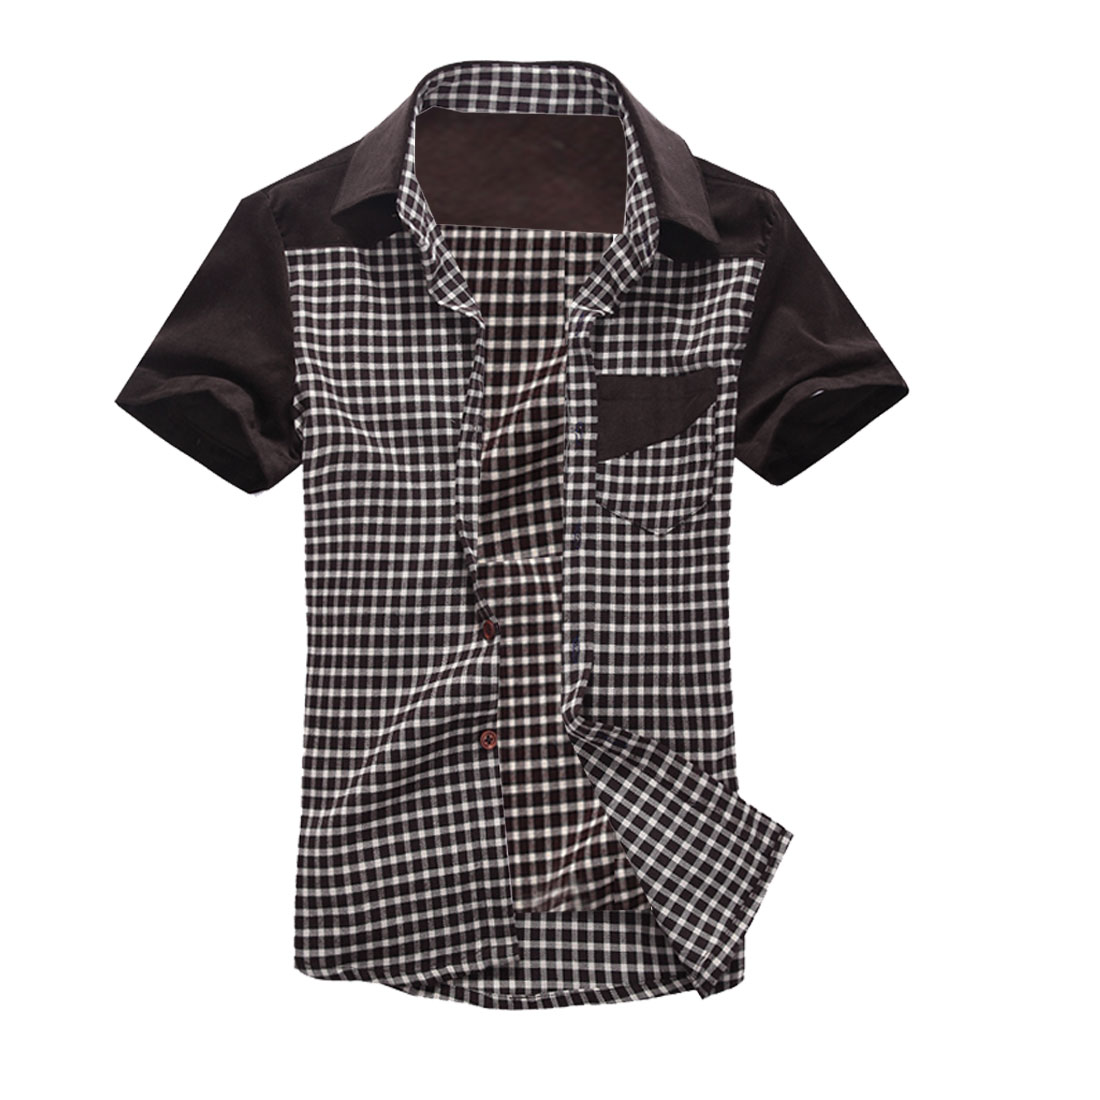 Man Breast Pockets Plaids Button-Front Corduroy Shirt Coffee M